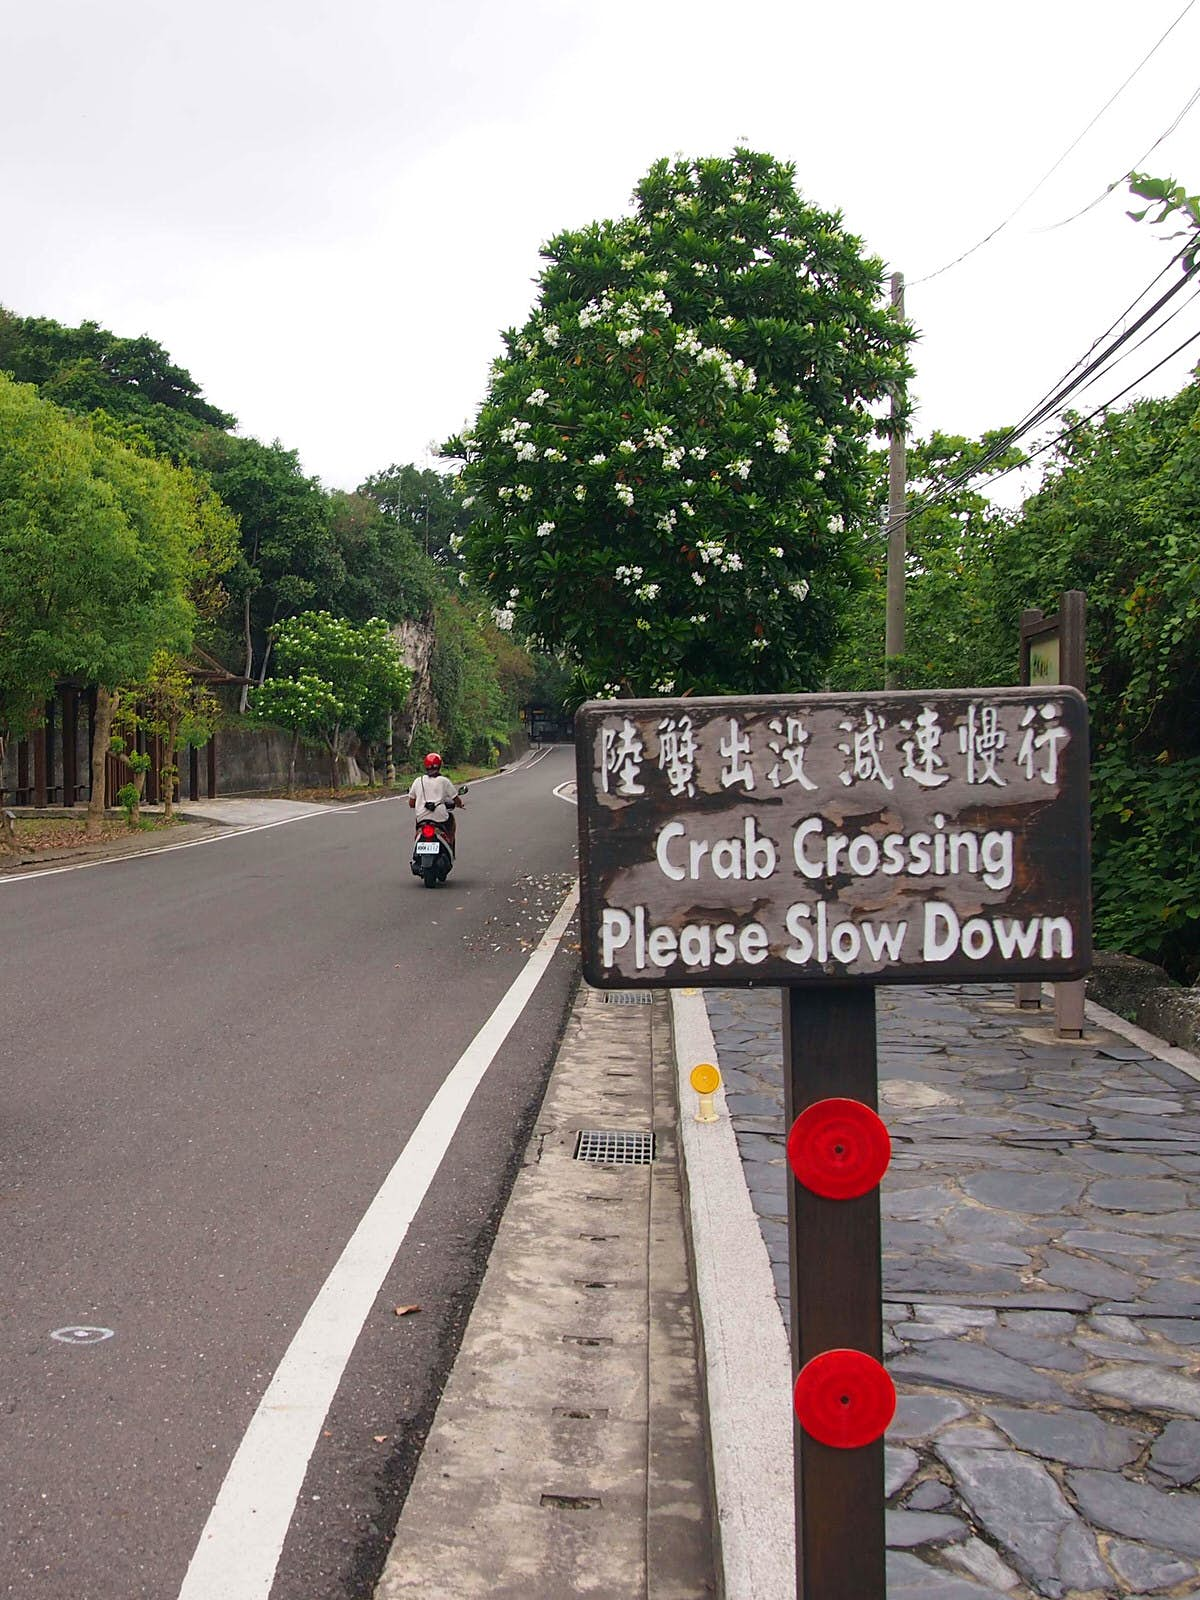 A scooter drives past a wooden sign that reads 'Crab Crossing Please Slow Down'. Drivers should take care not to disturb crabs crossing the road © Tess Humphrys / Lonely Planet